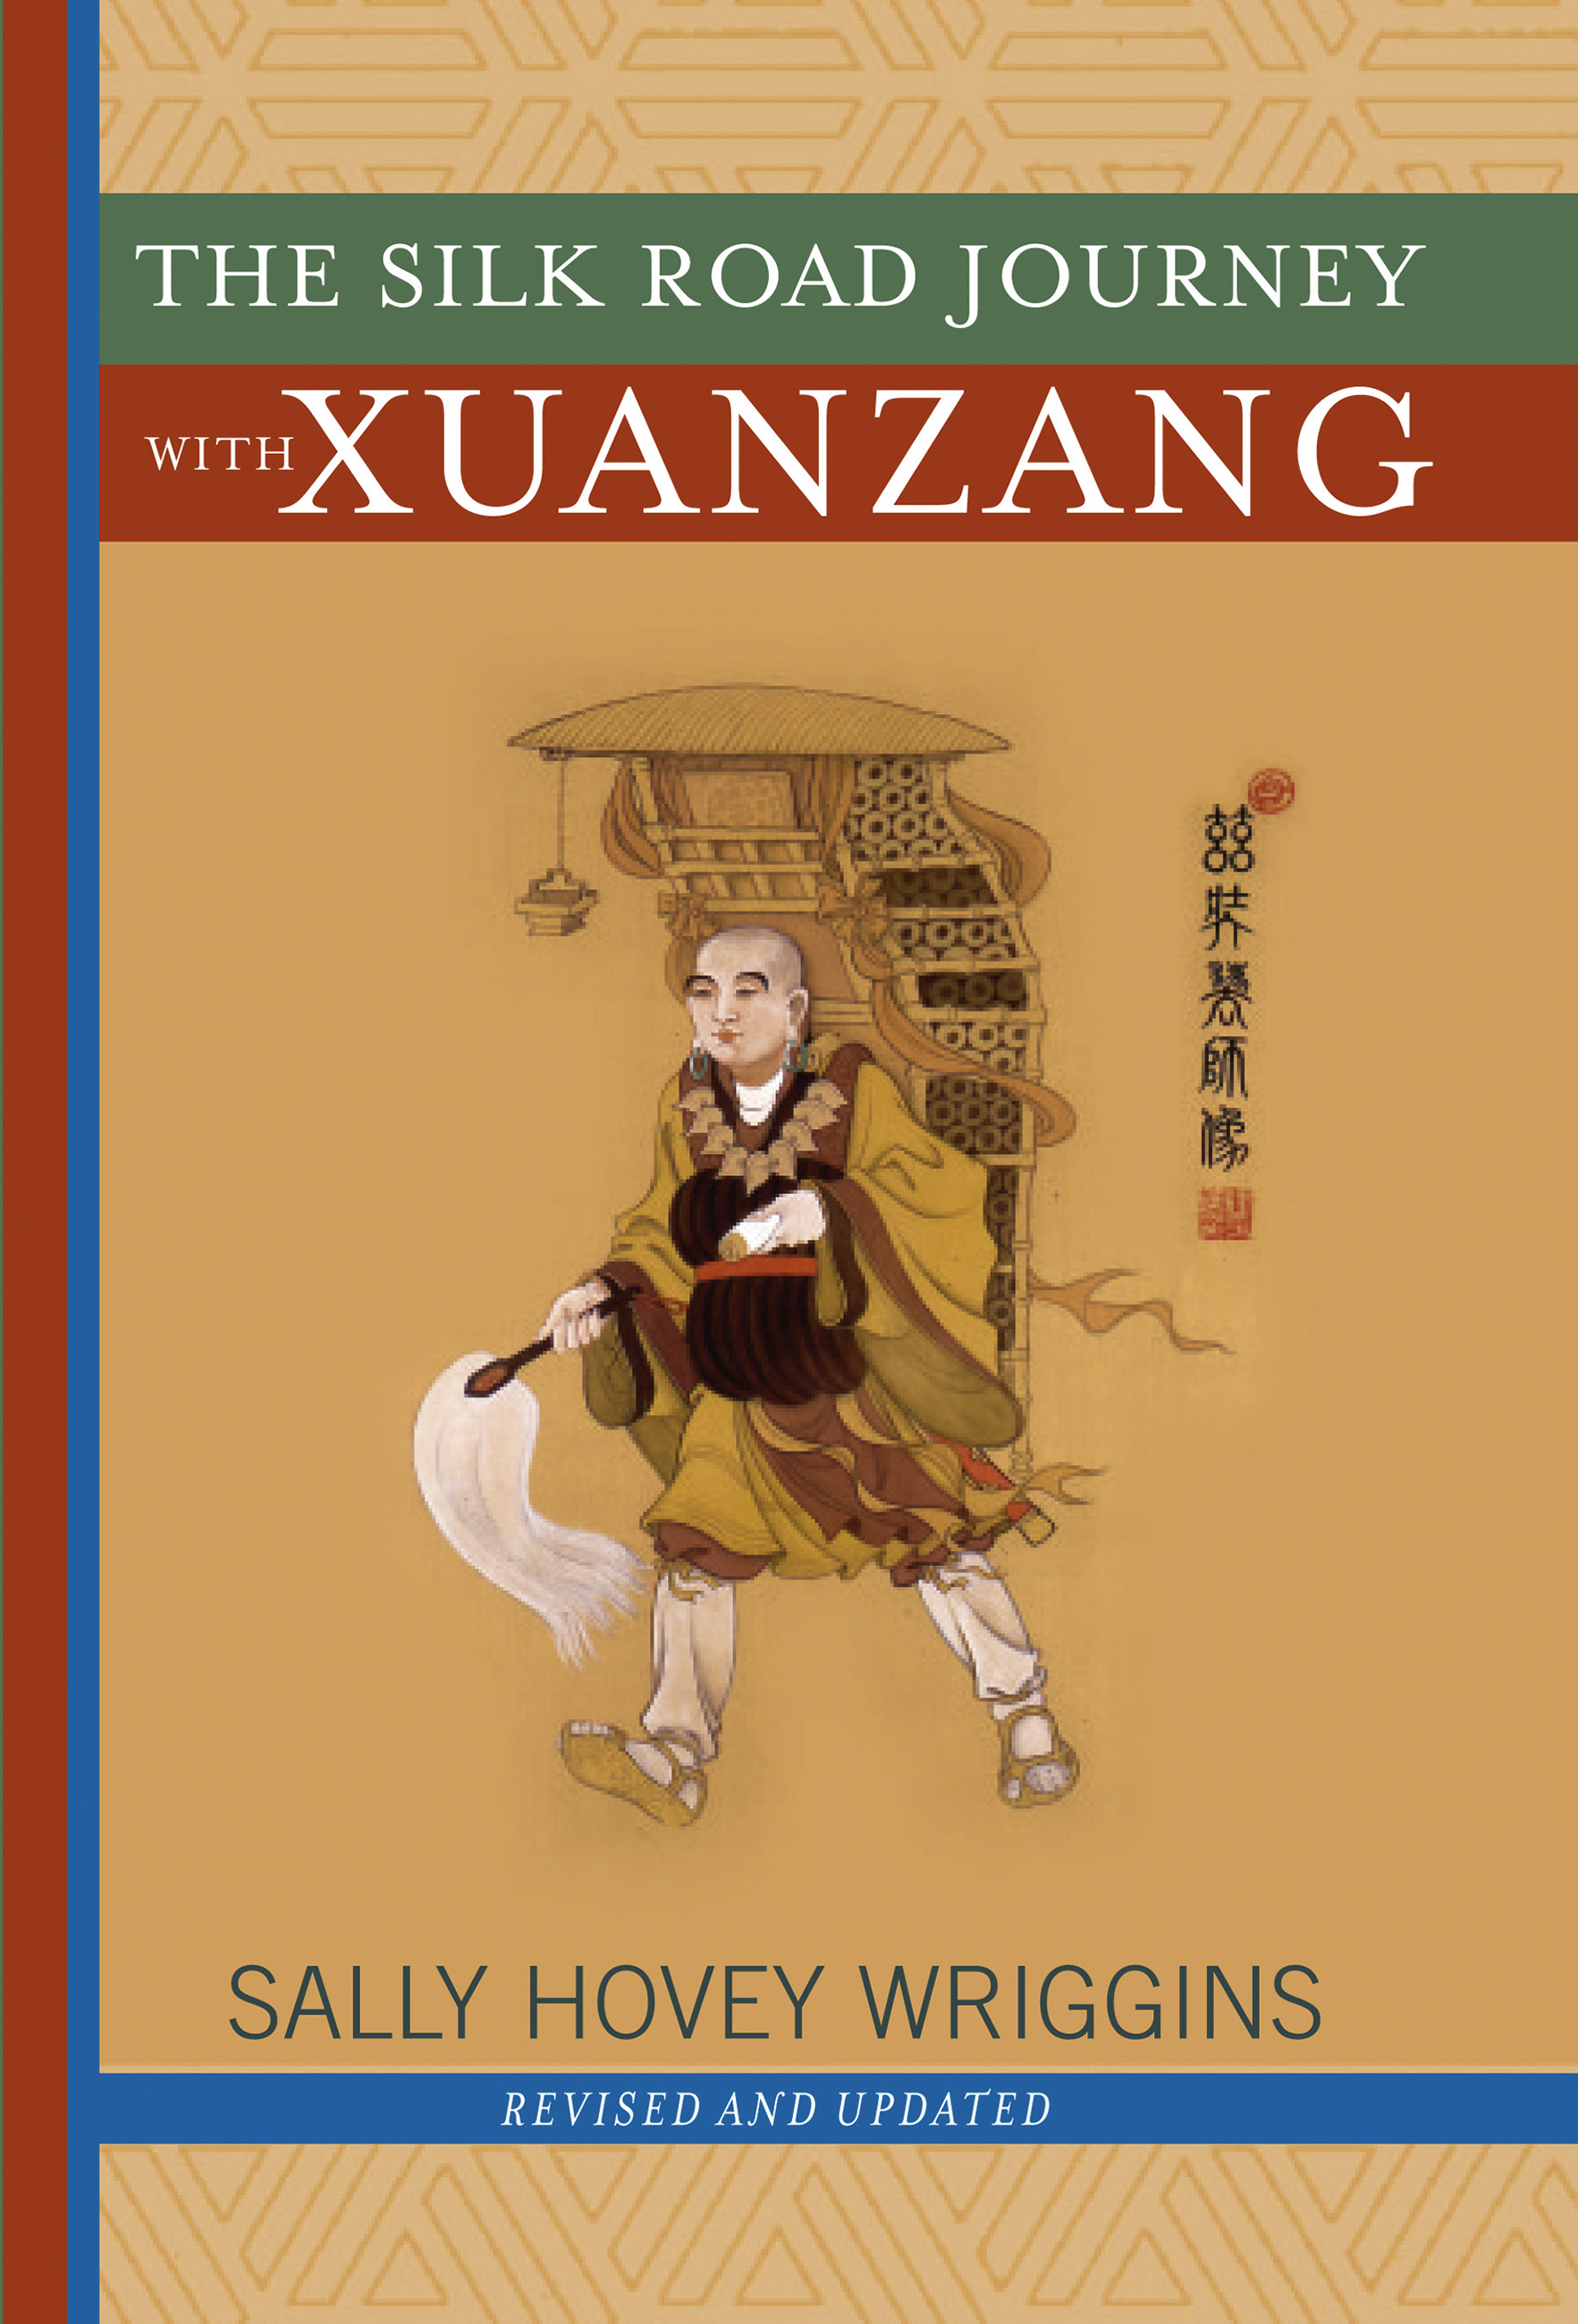 xuan zang the silk road journey